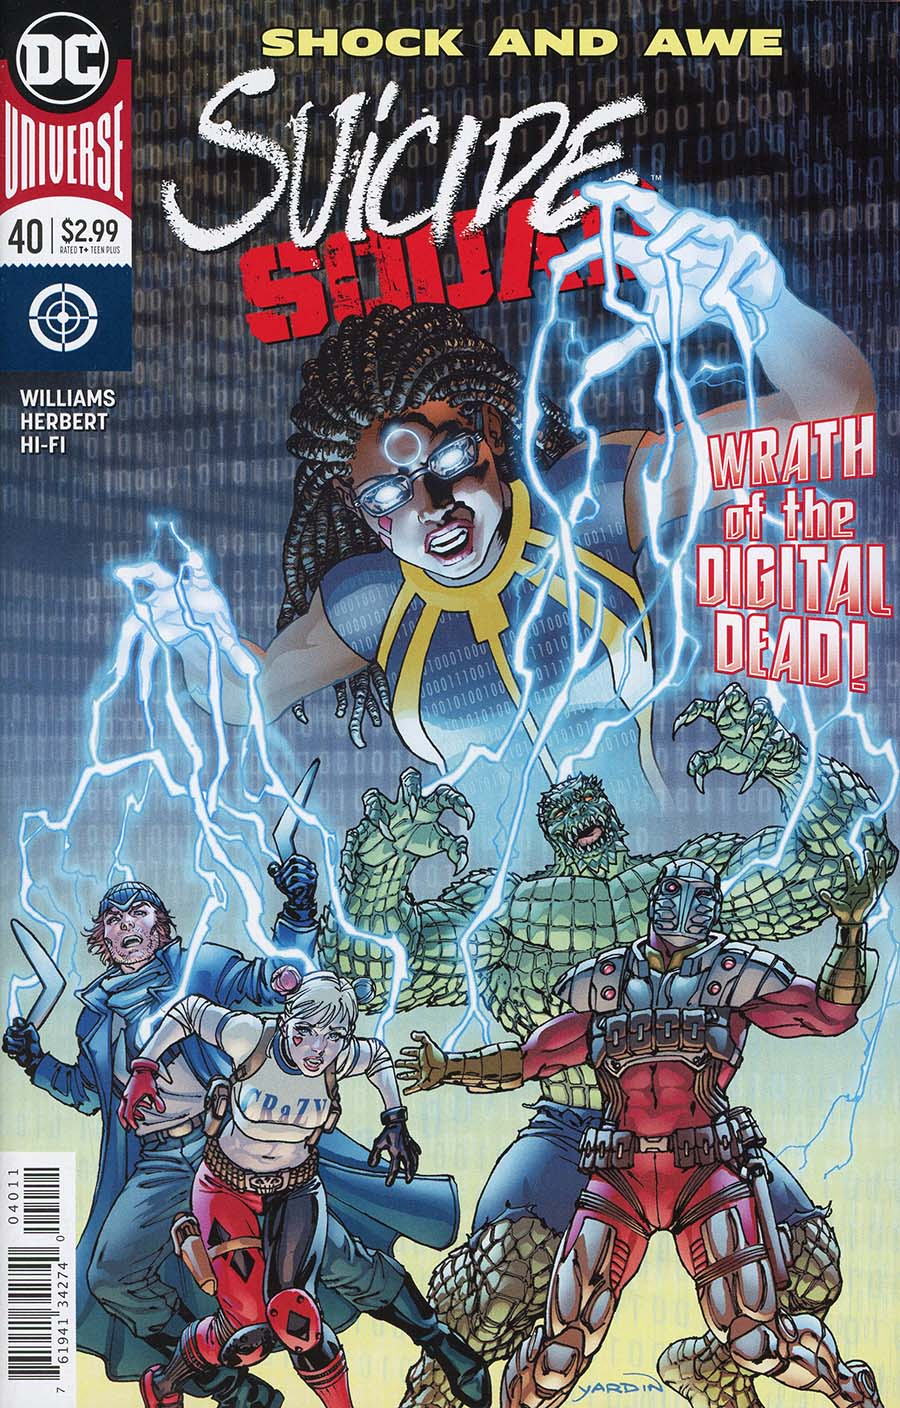 Suicide Squad 40 - Shock and Awe Conclusion